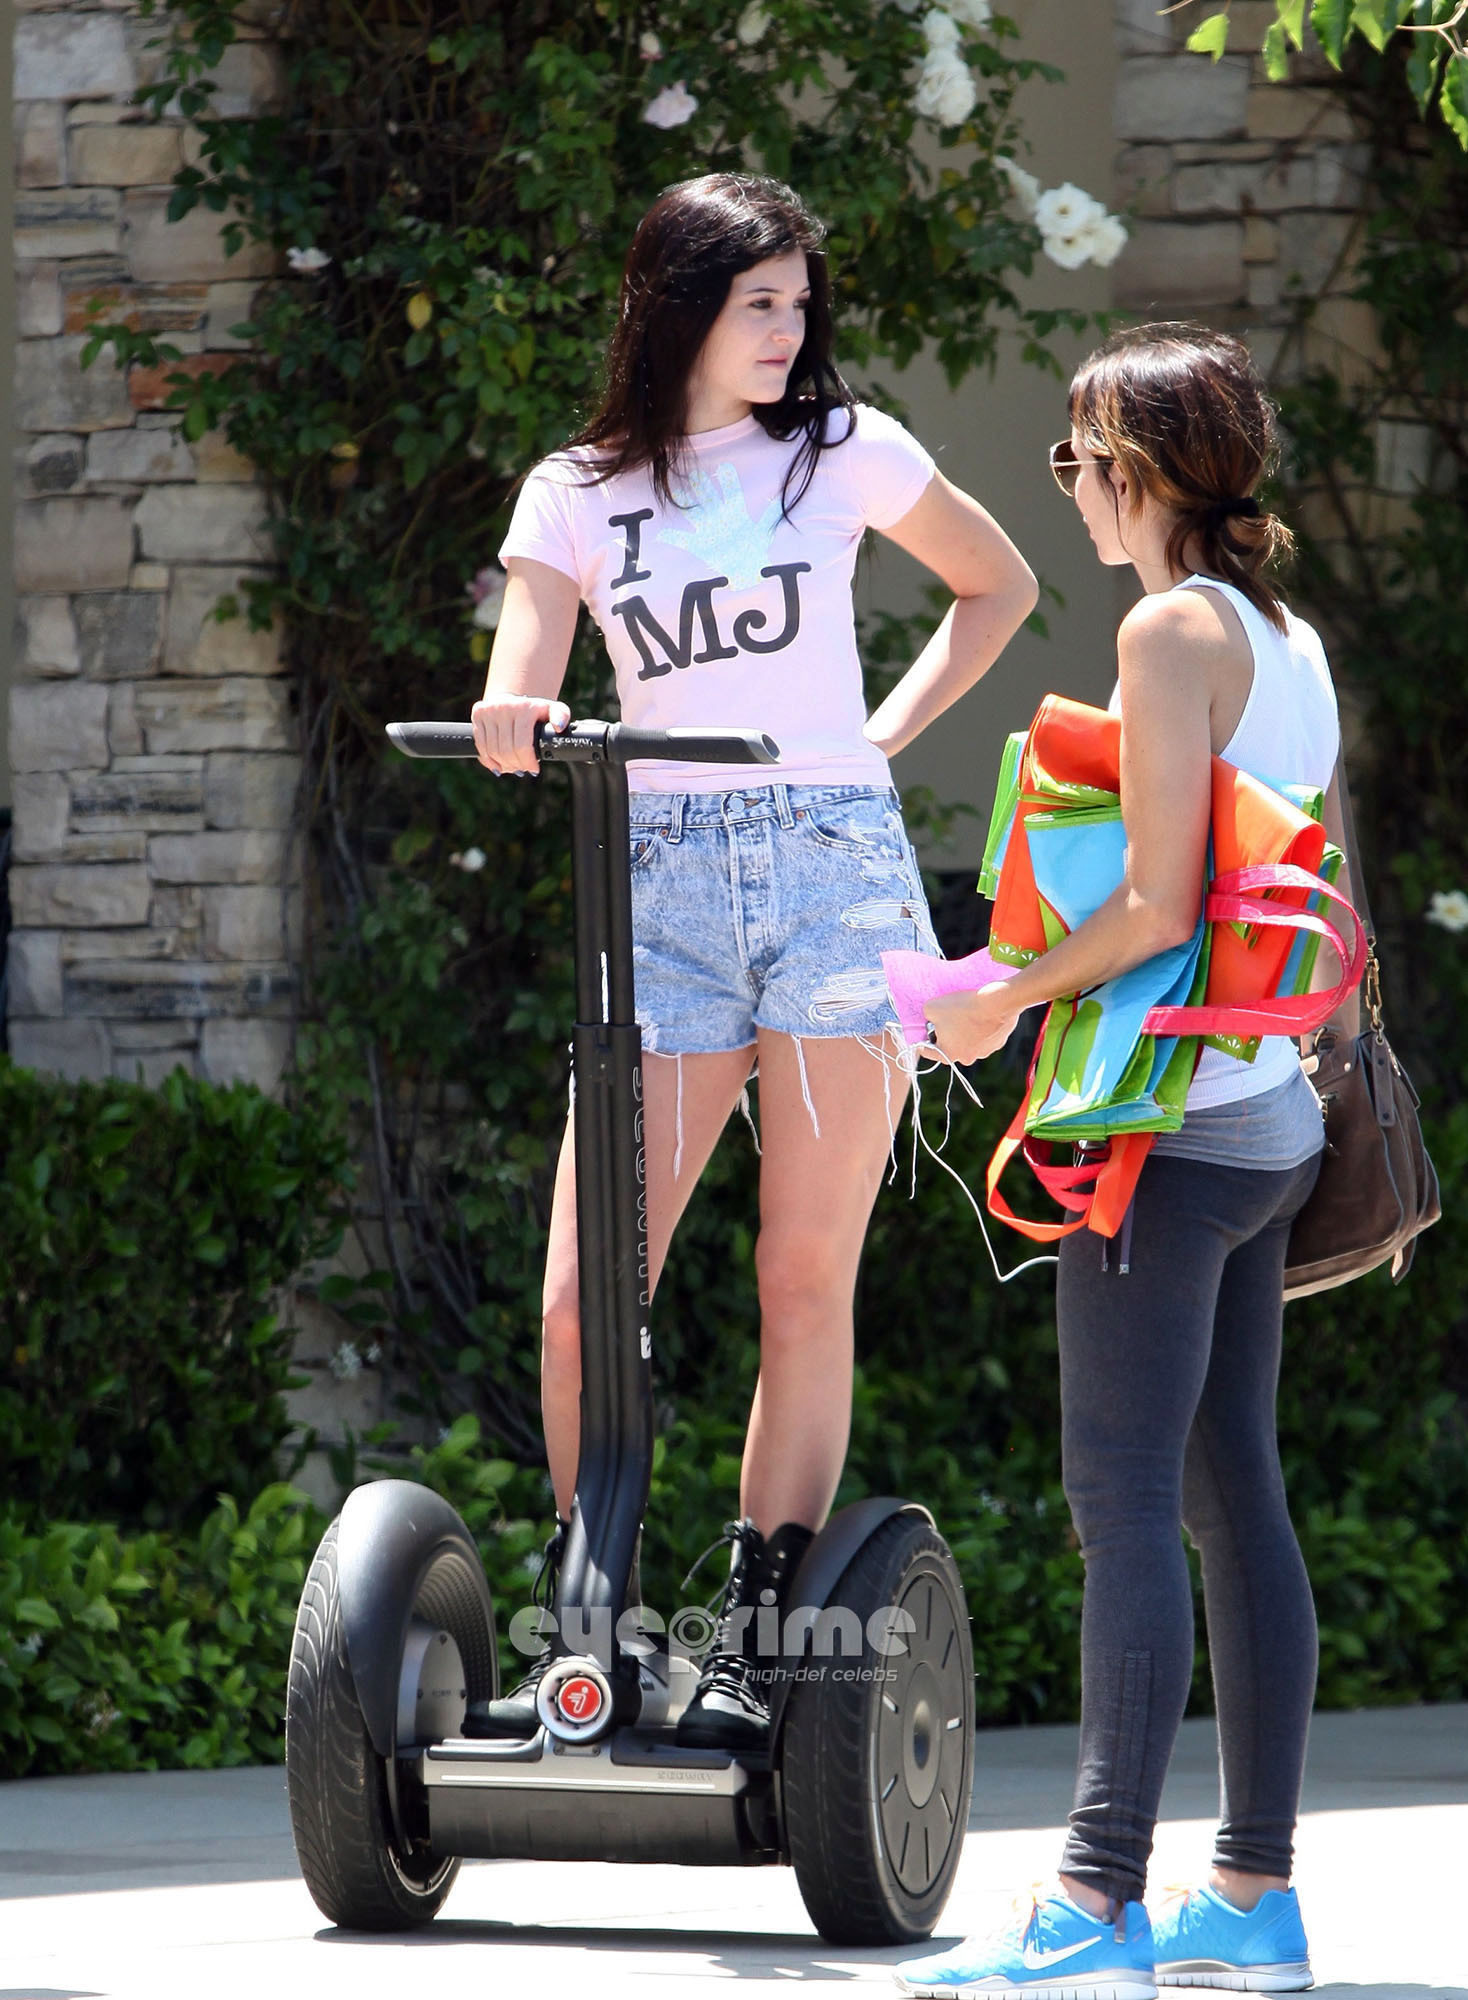 Kylie Jenner got her michael jackson bahagian, atas on and on segway in calabasas